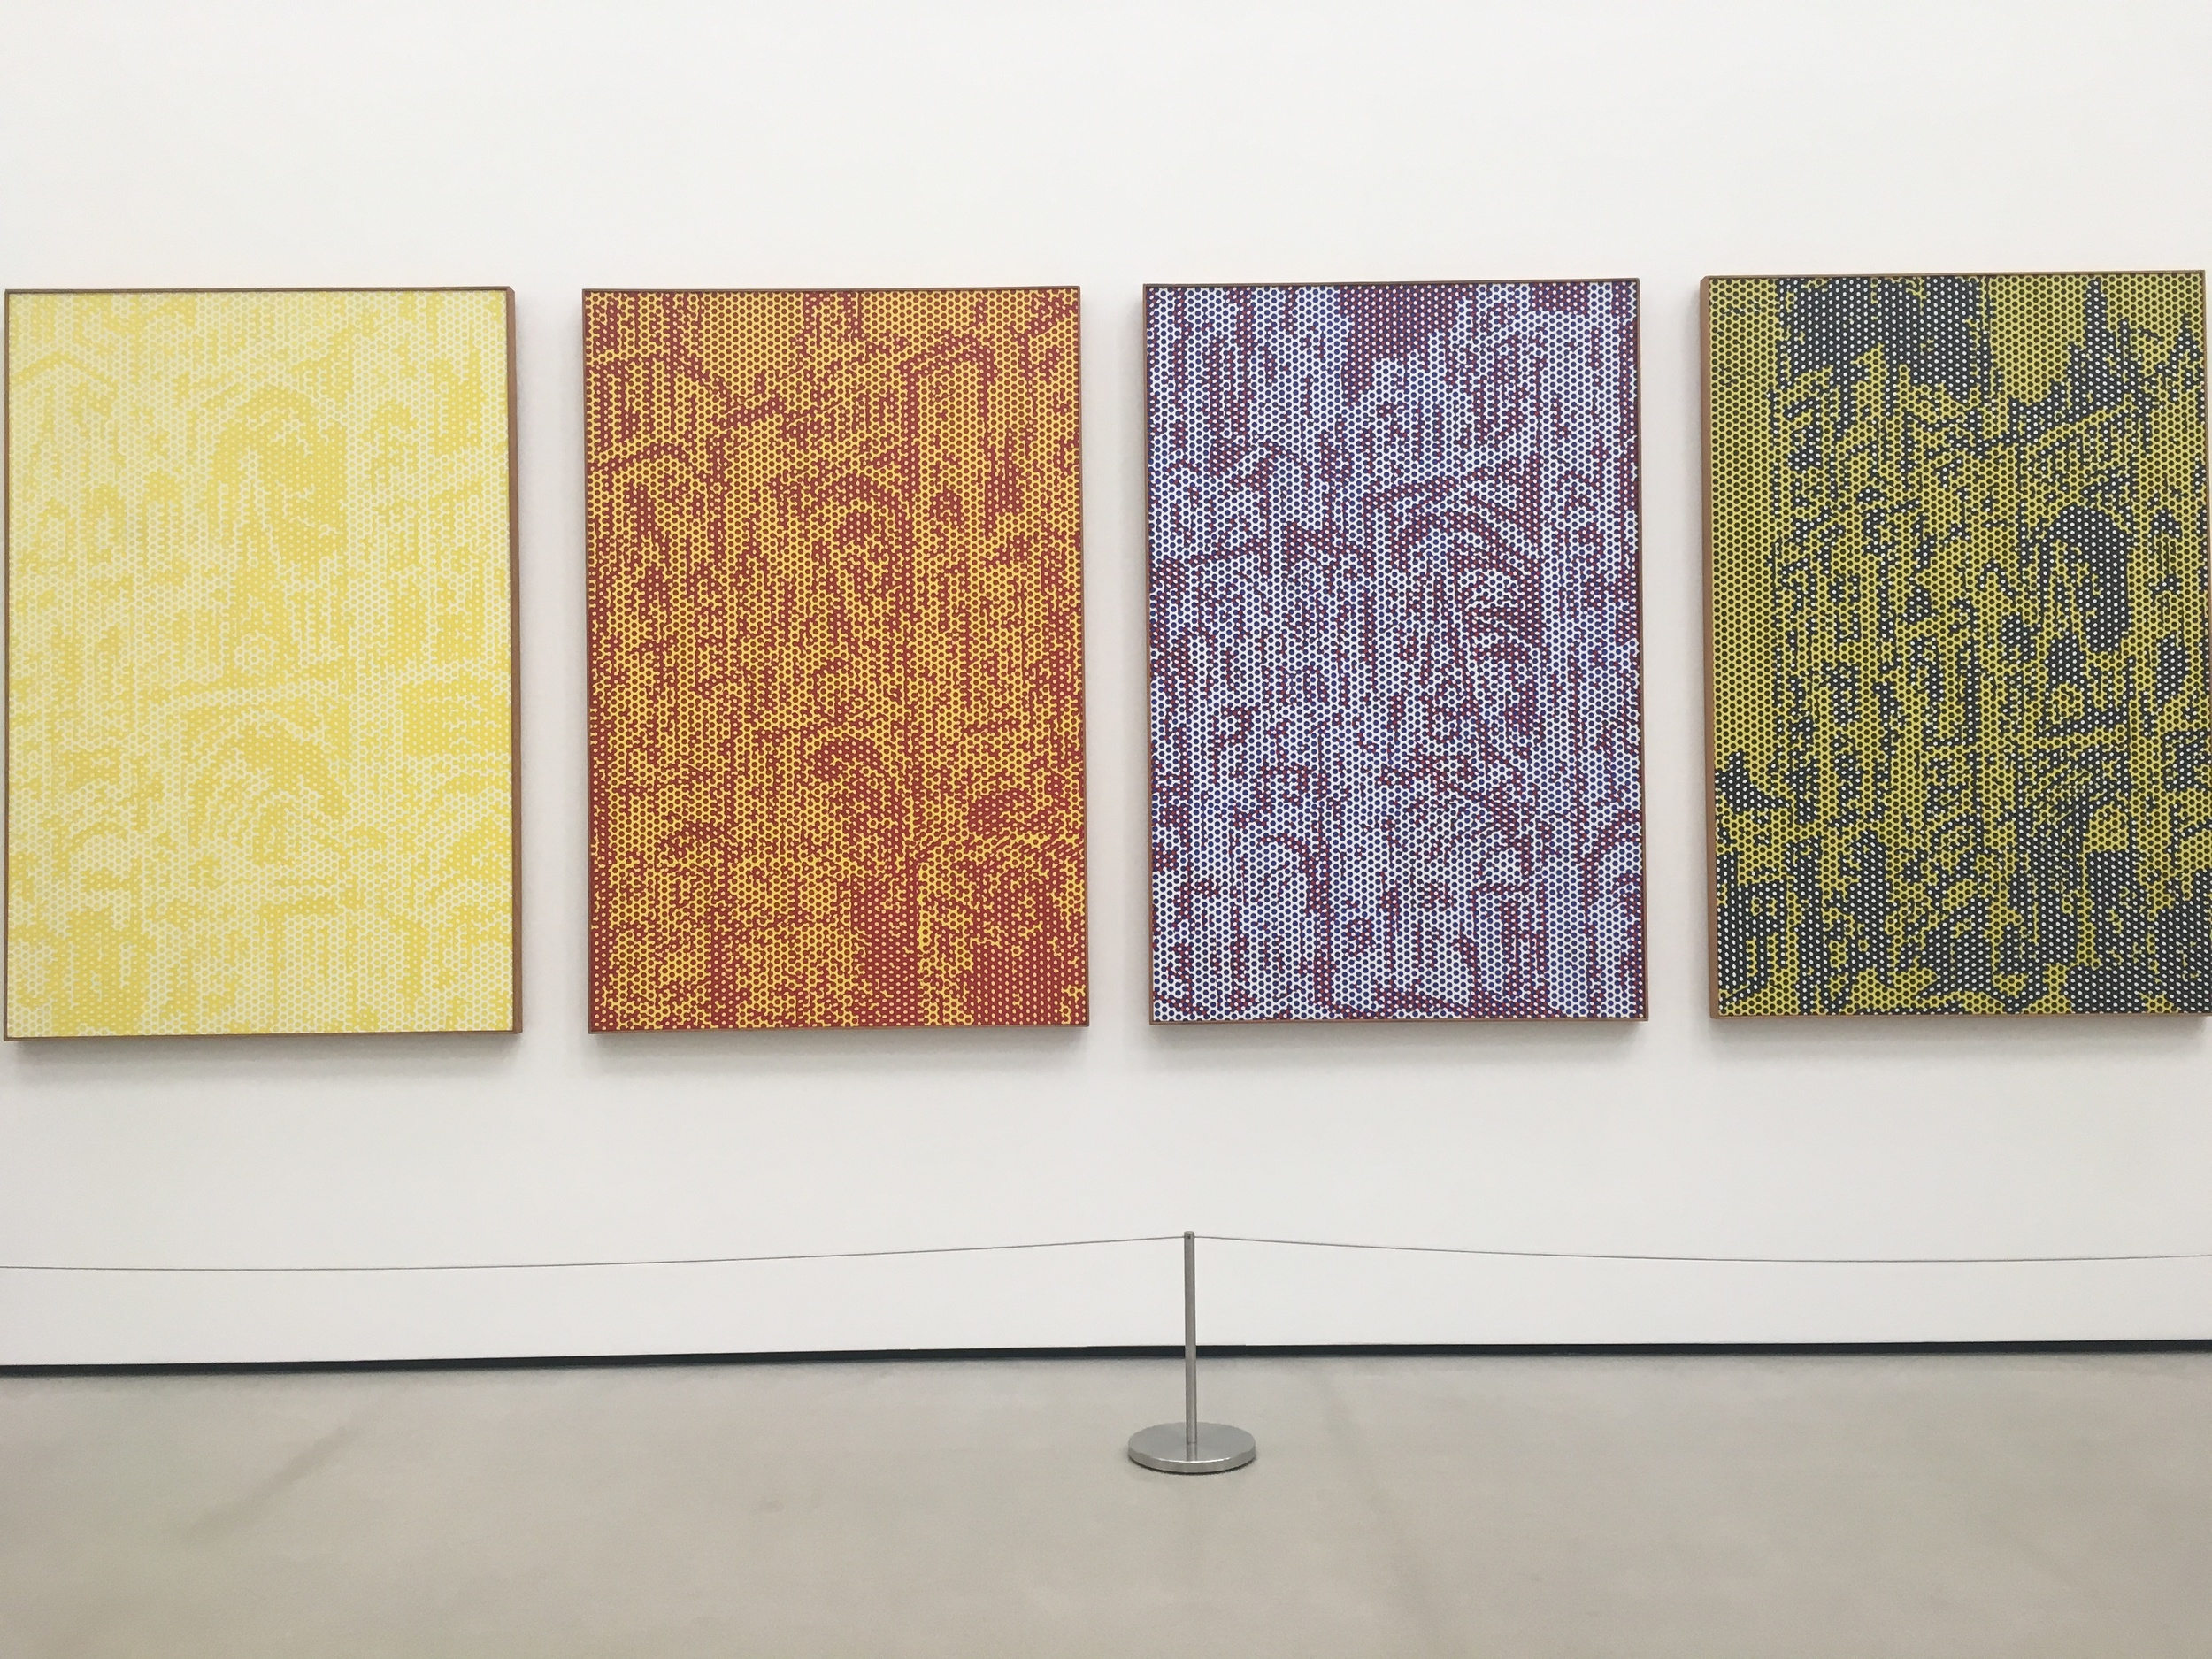 Roy Lichtenstein's take on my favorite paintings of all time - Monet's Rouen Cathedral series. It is so cool to see other artists loving and being inspired by the same work that I love and am inspired by.